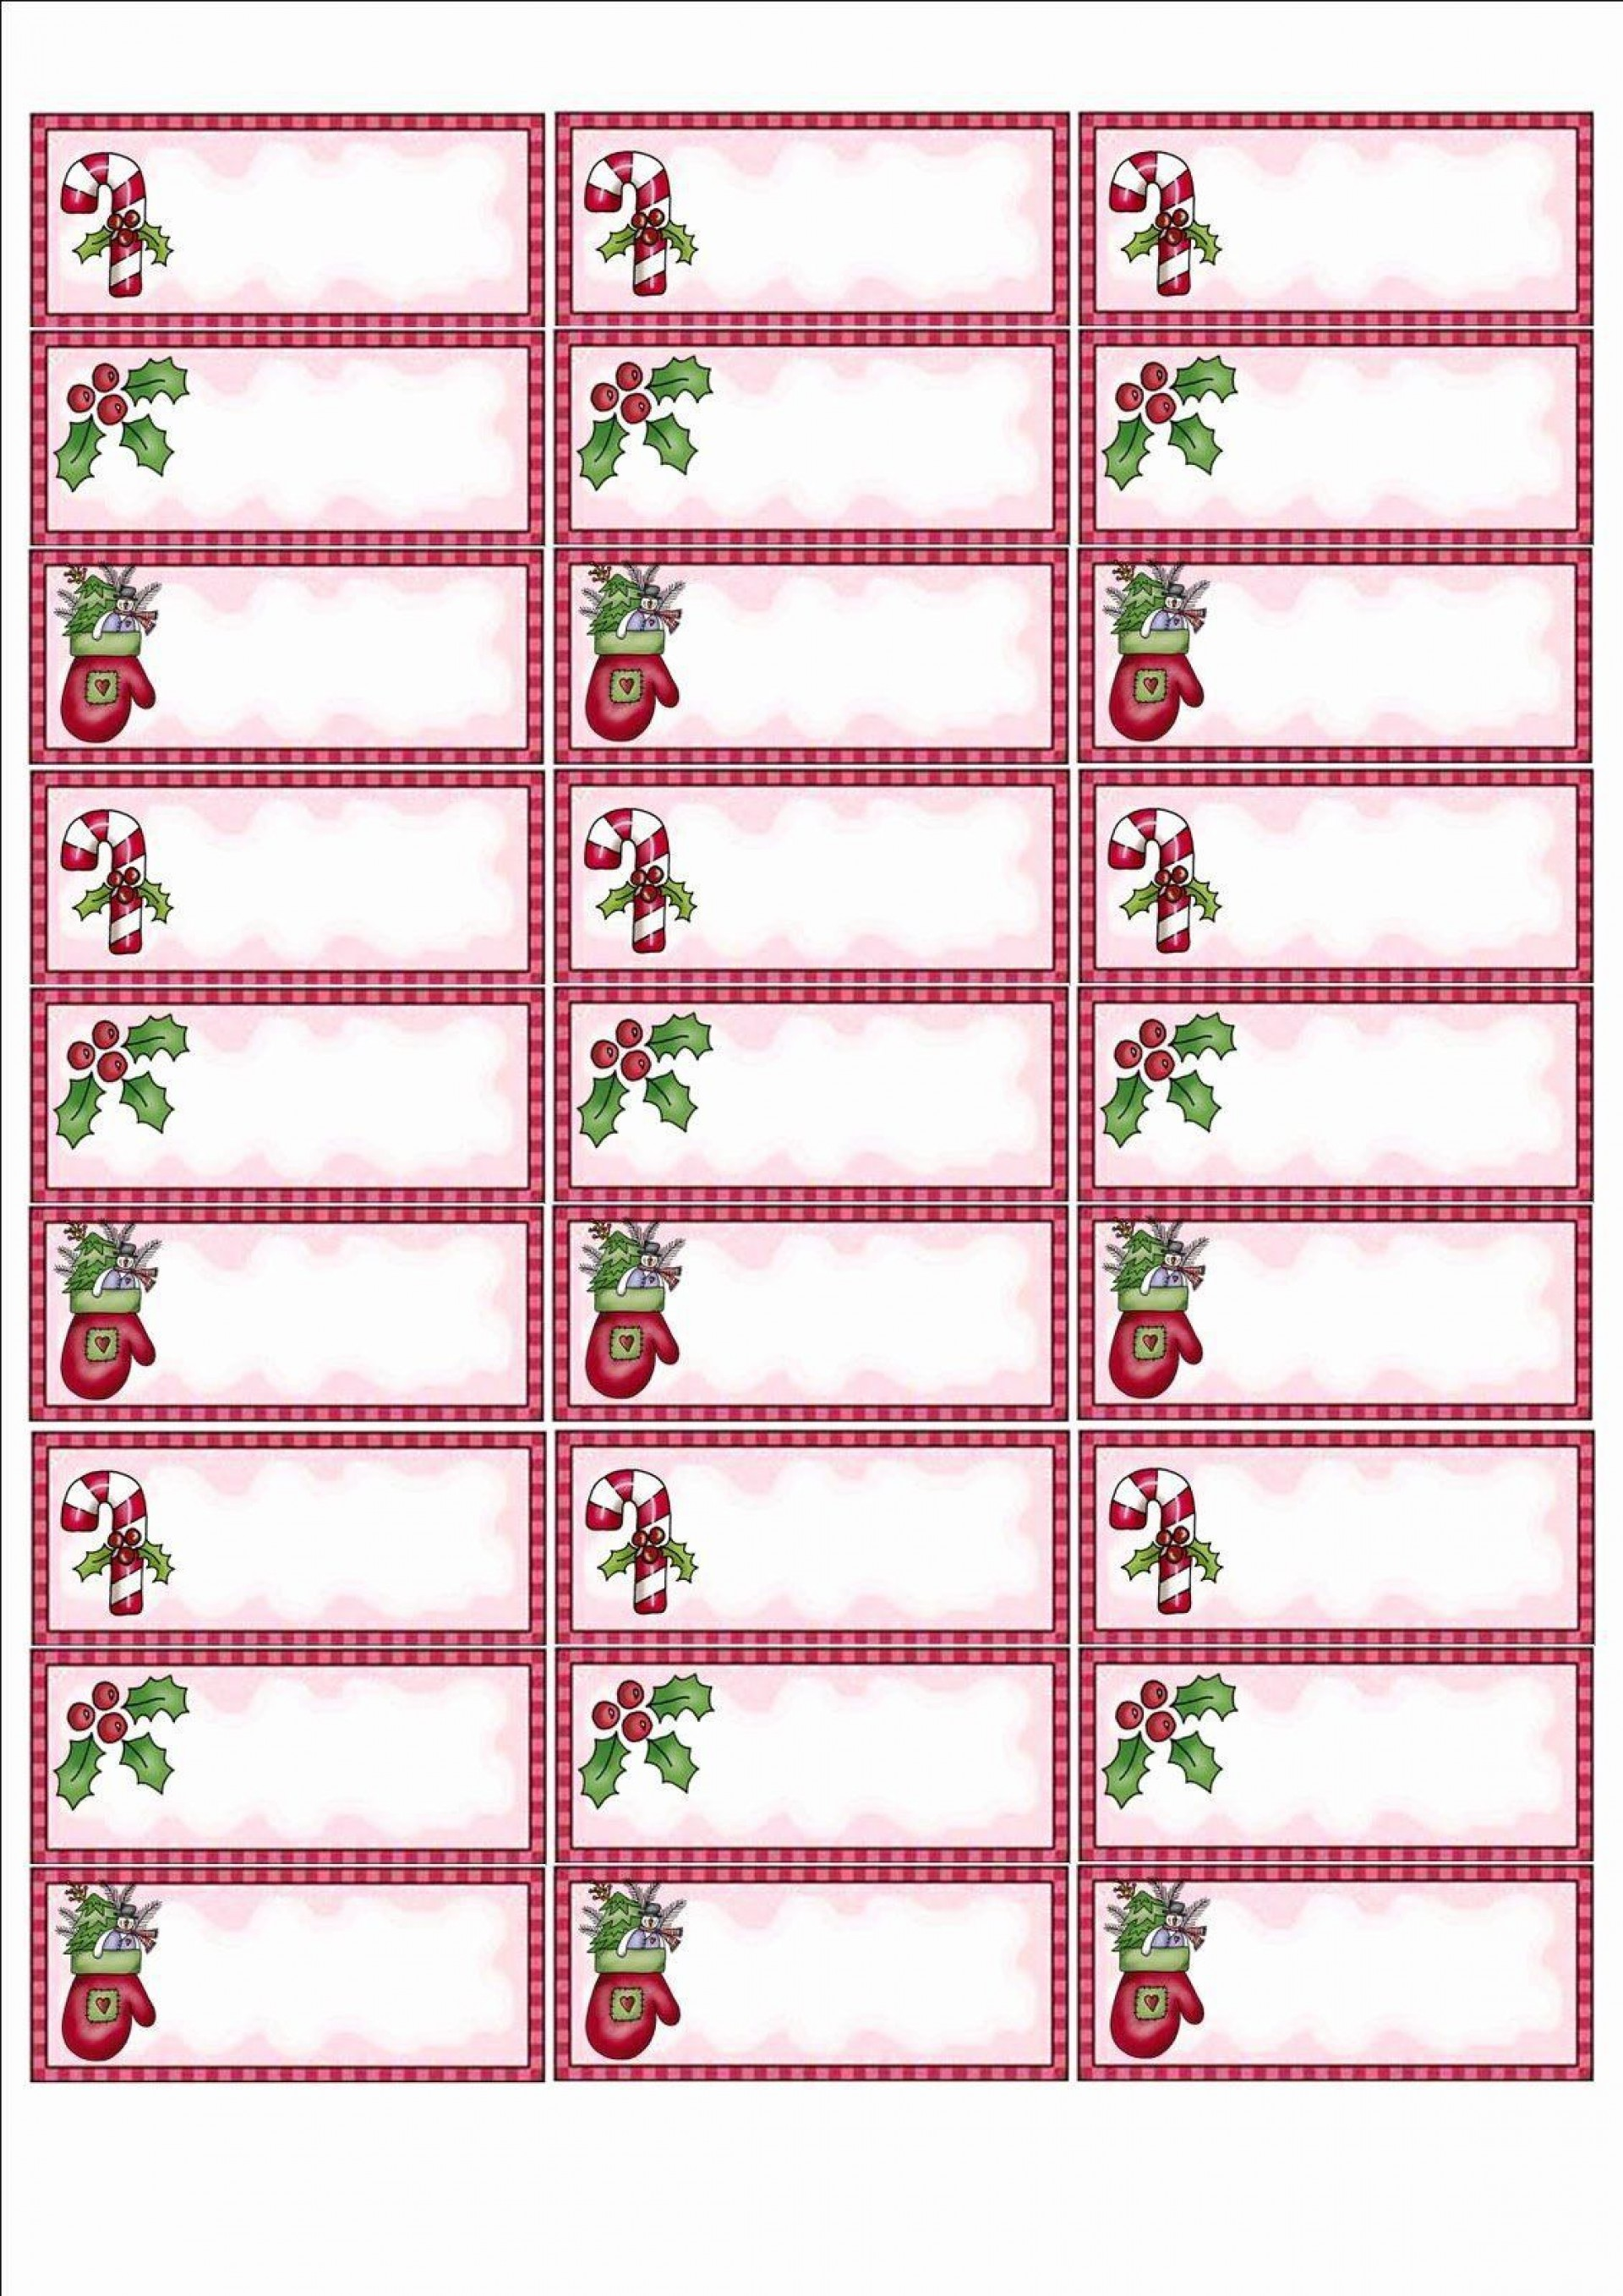 003 Incredible Free Addres Label Template Christma High Definition  Christmas Return 30 Per Sheet Microsoft Word1920